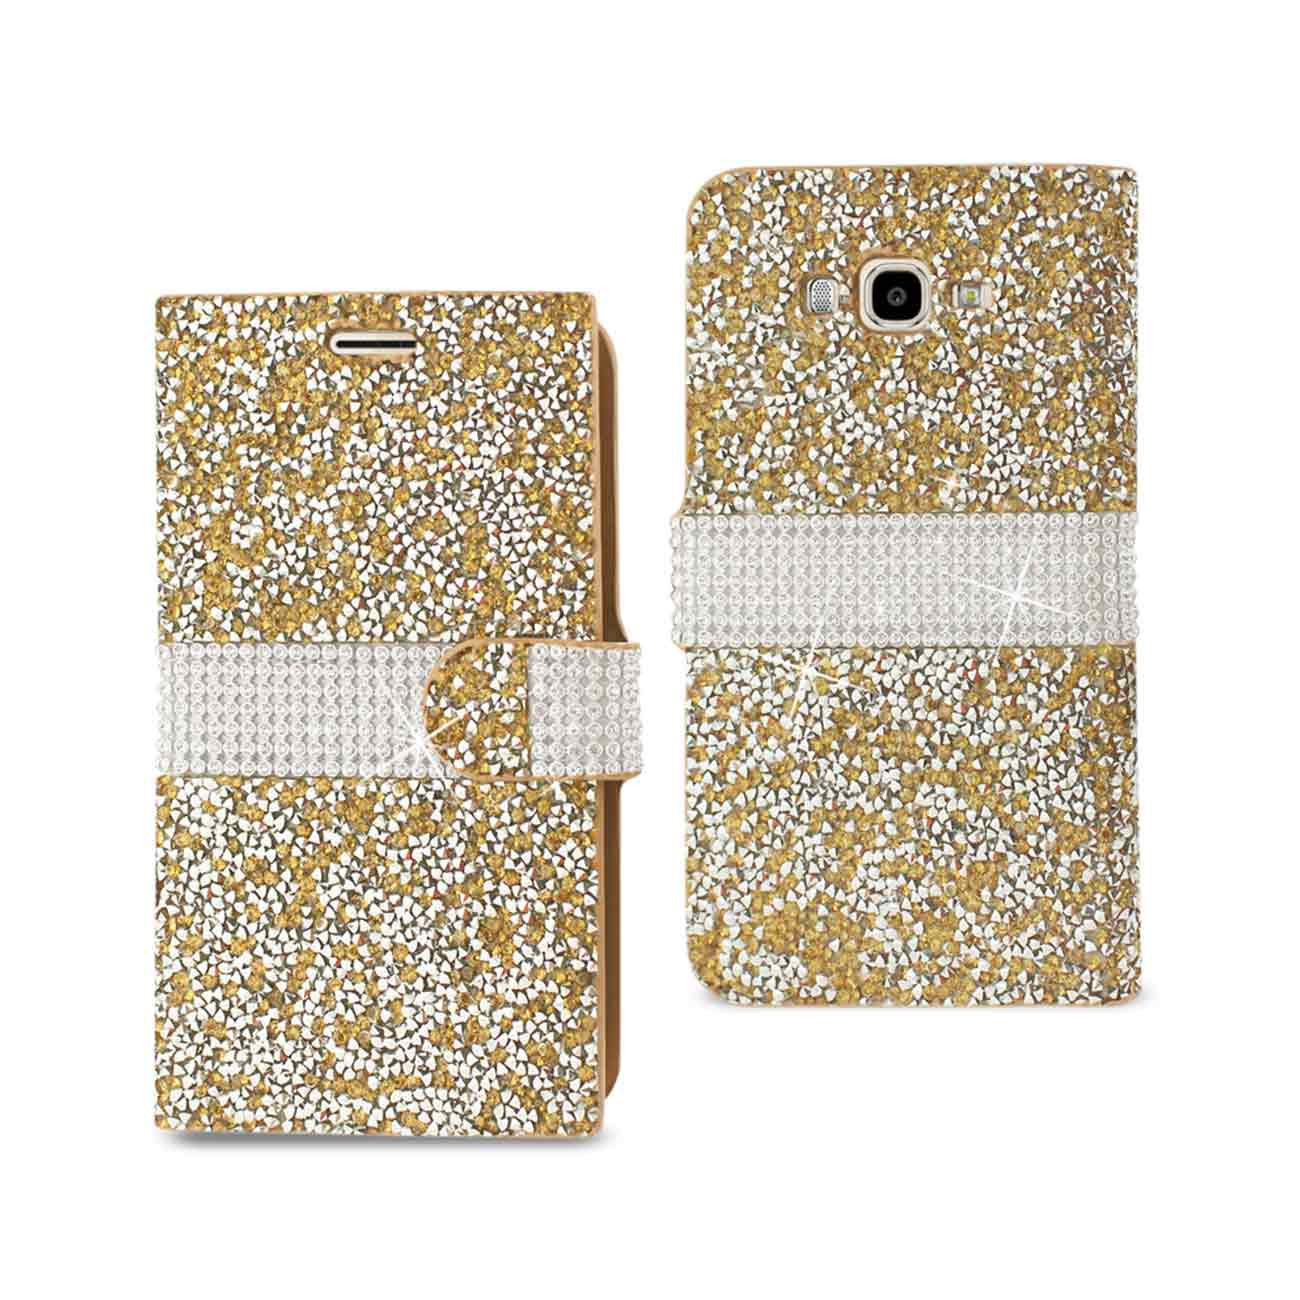 SAMSUNG GALAXY J7 JEWELRY RHINESTONE WALLET CASE IN GOLD